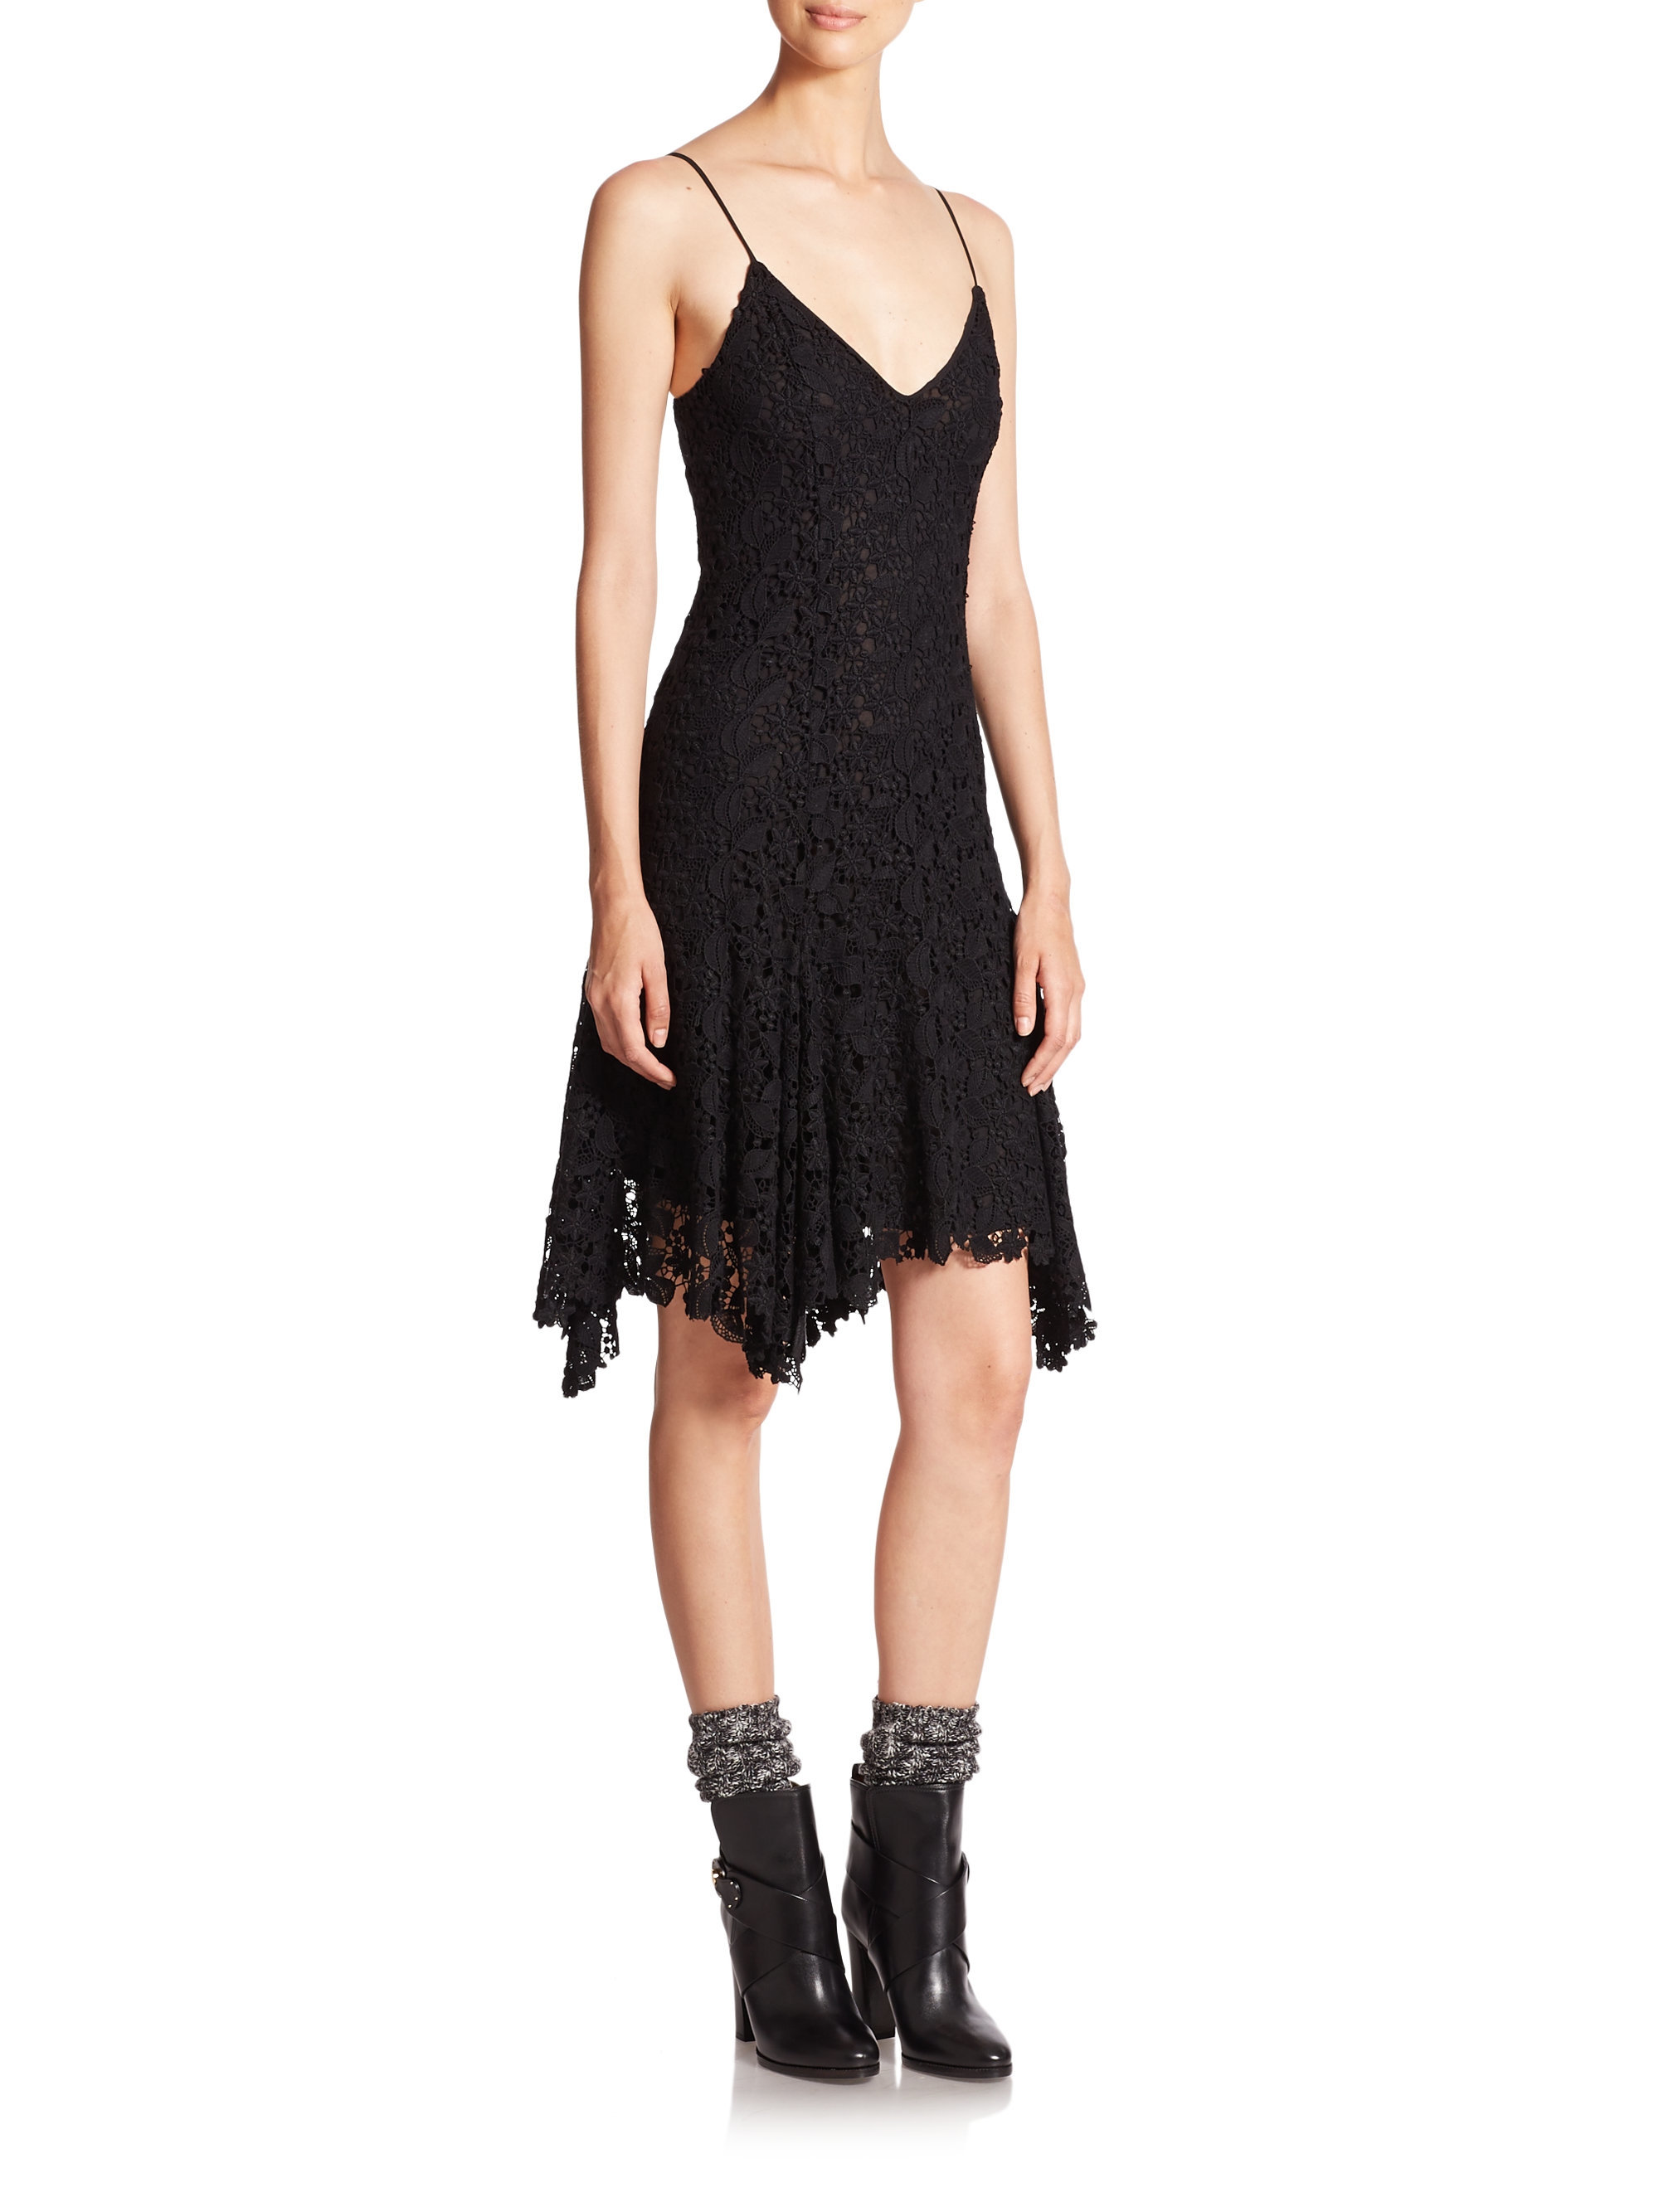 polo ralph lauren polo black lace dress black product 0 383986728 normal